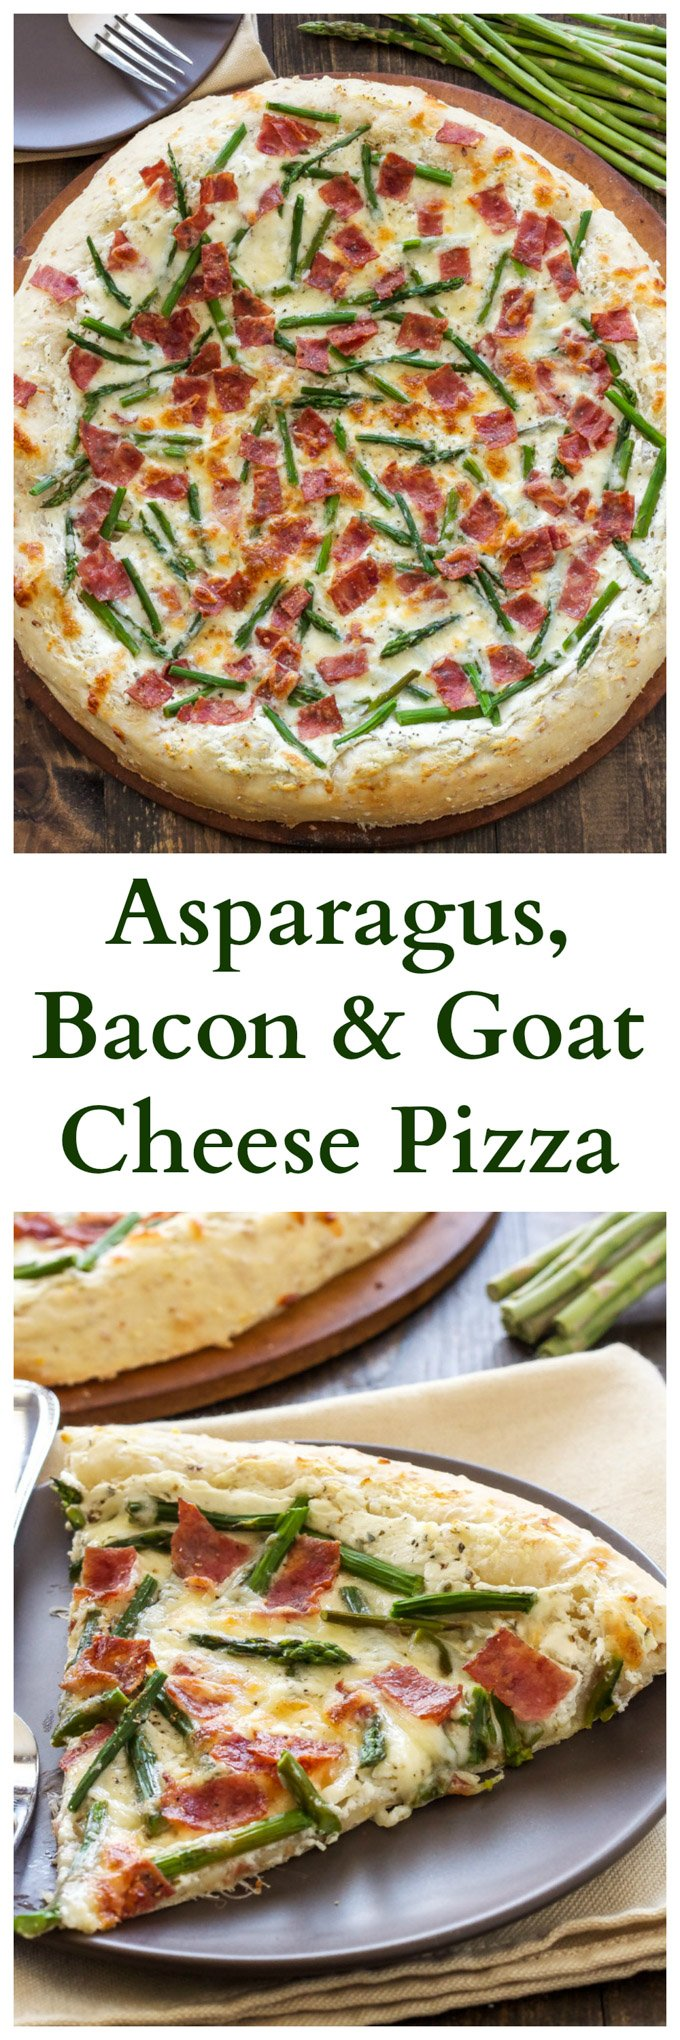 Asparagus, Bacon, and Goat Cheese Pizza | Asparagus, bacon, and goat cheese are the perfect pairings in the spring pizza!